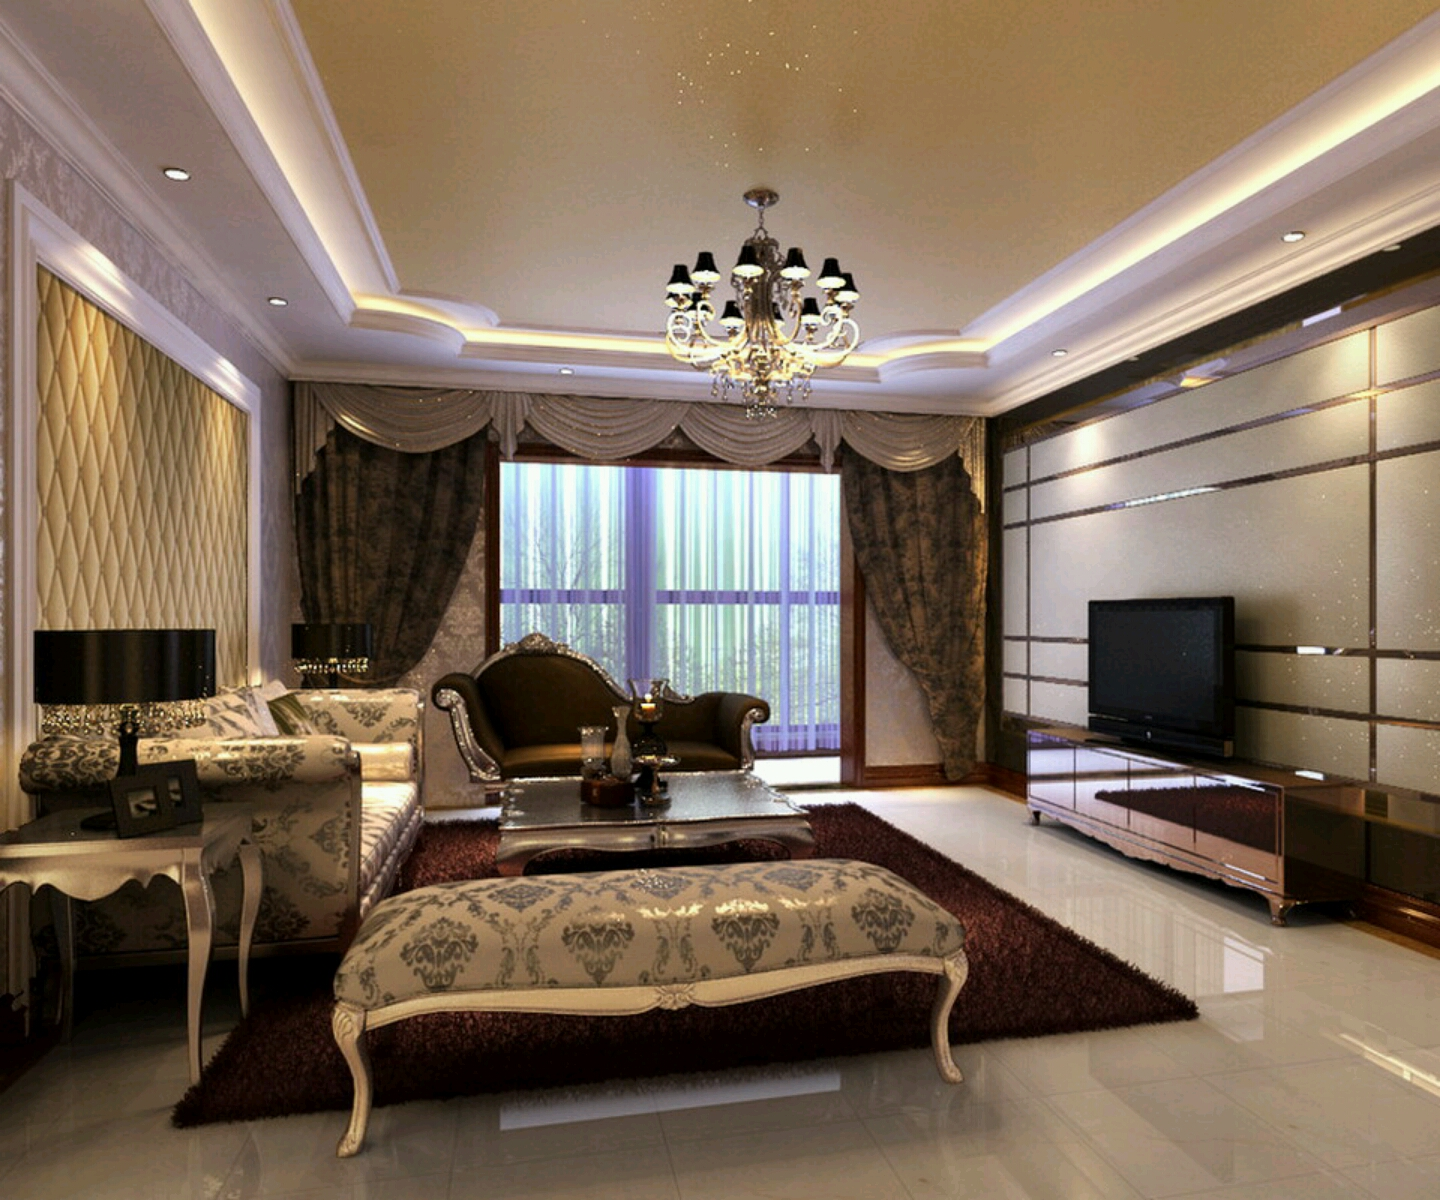 Interior decorating ideas living rooms dream house for Interior designs of room